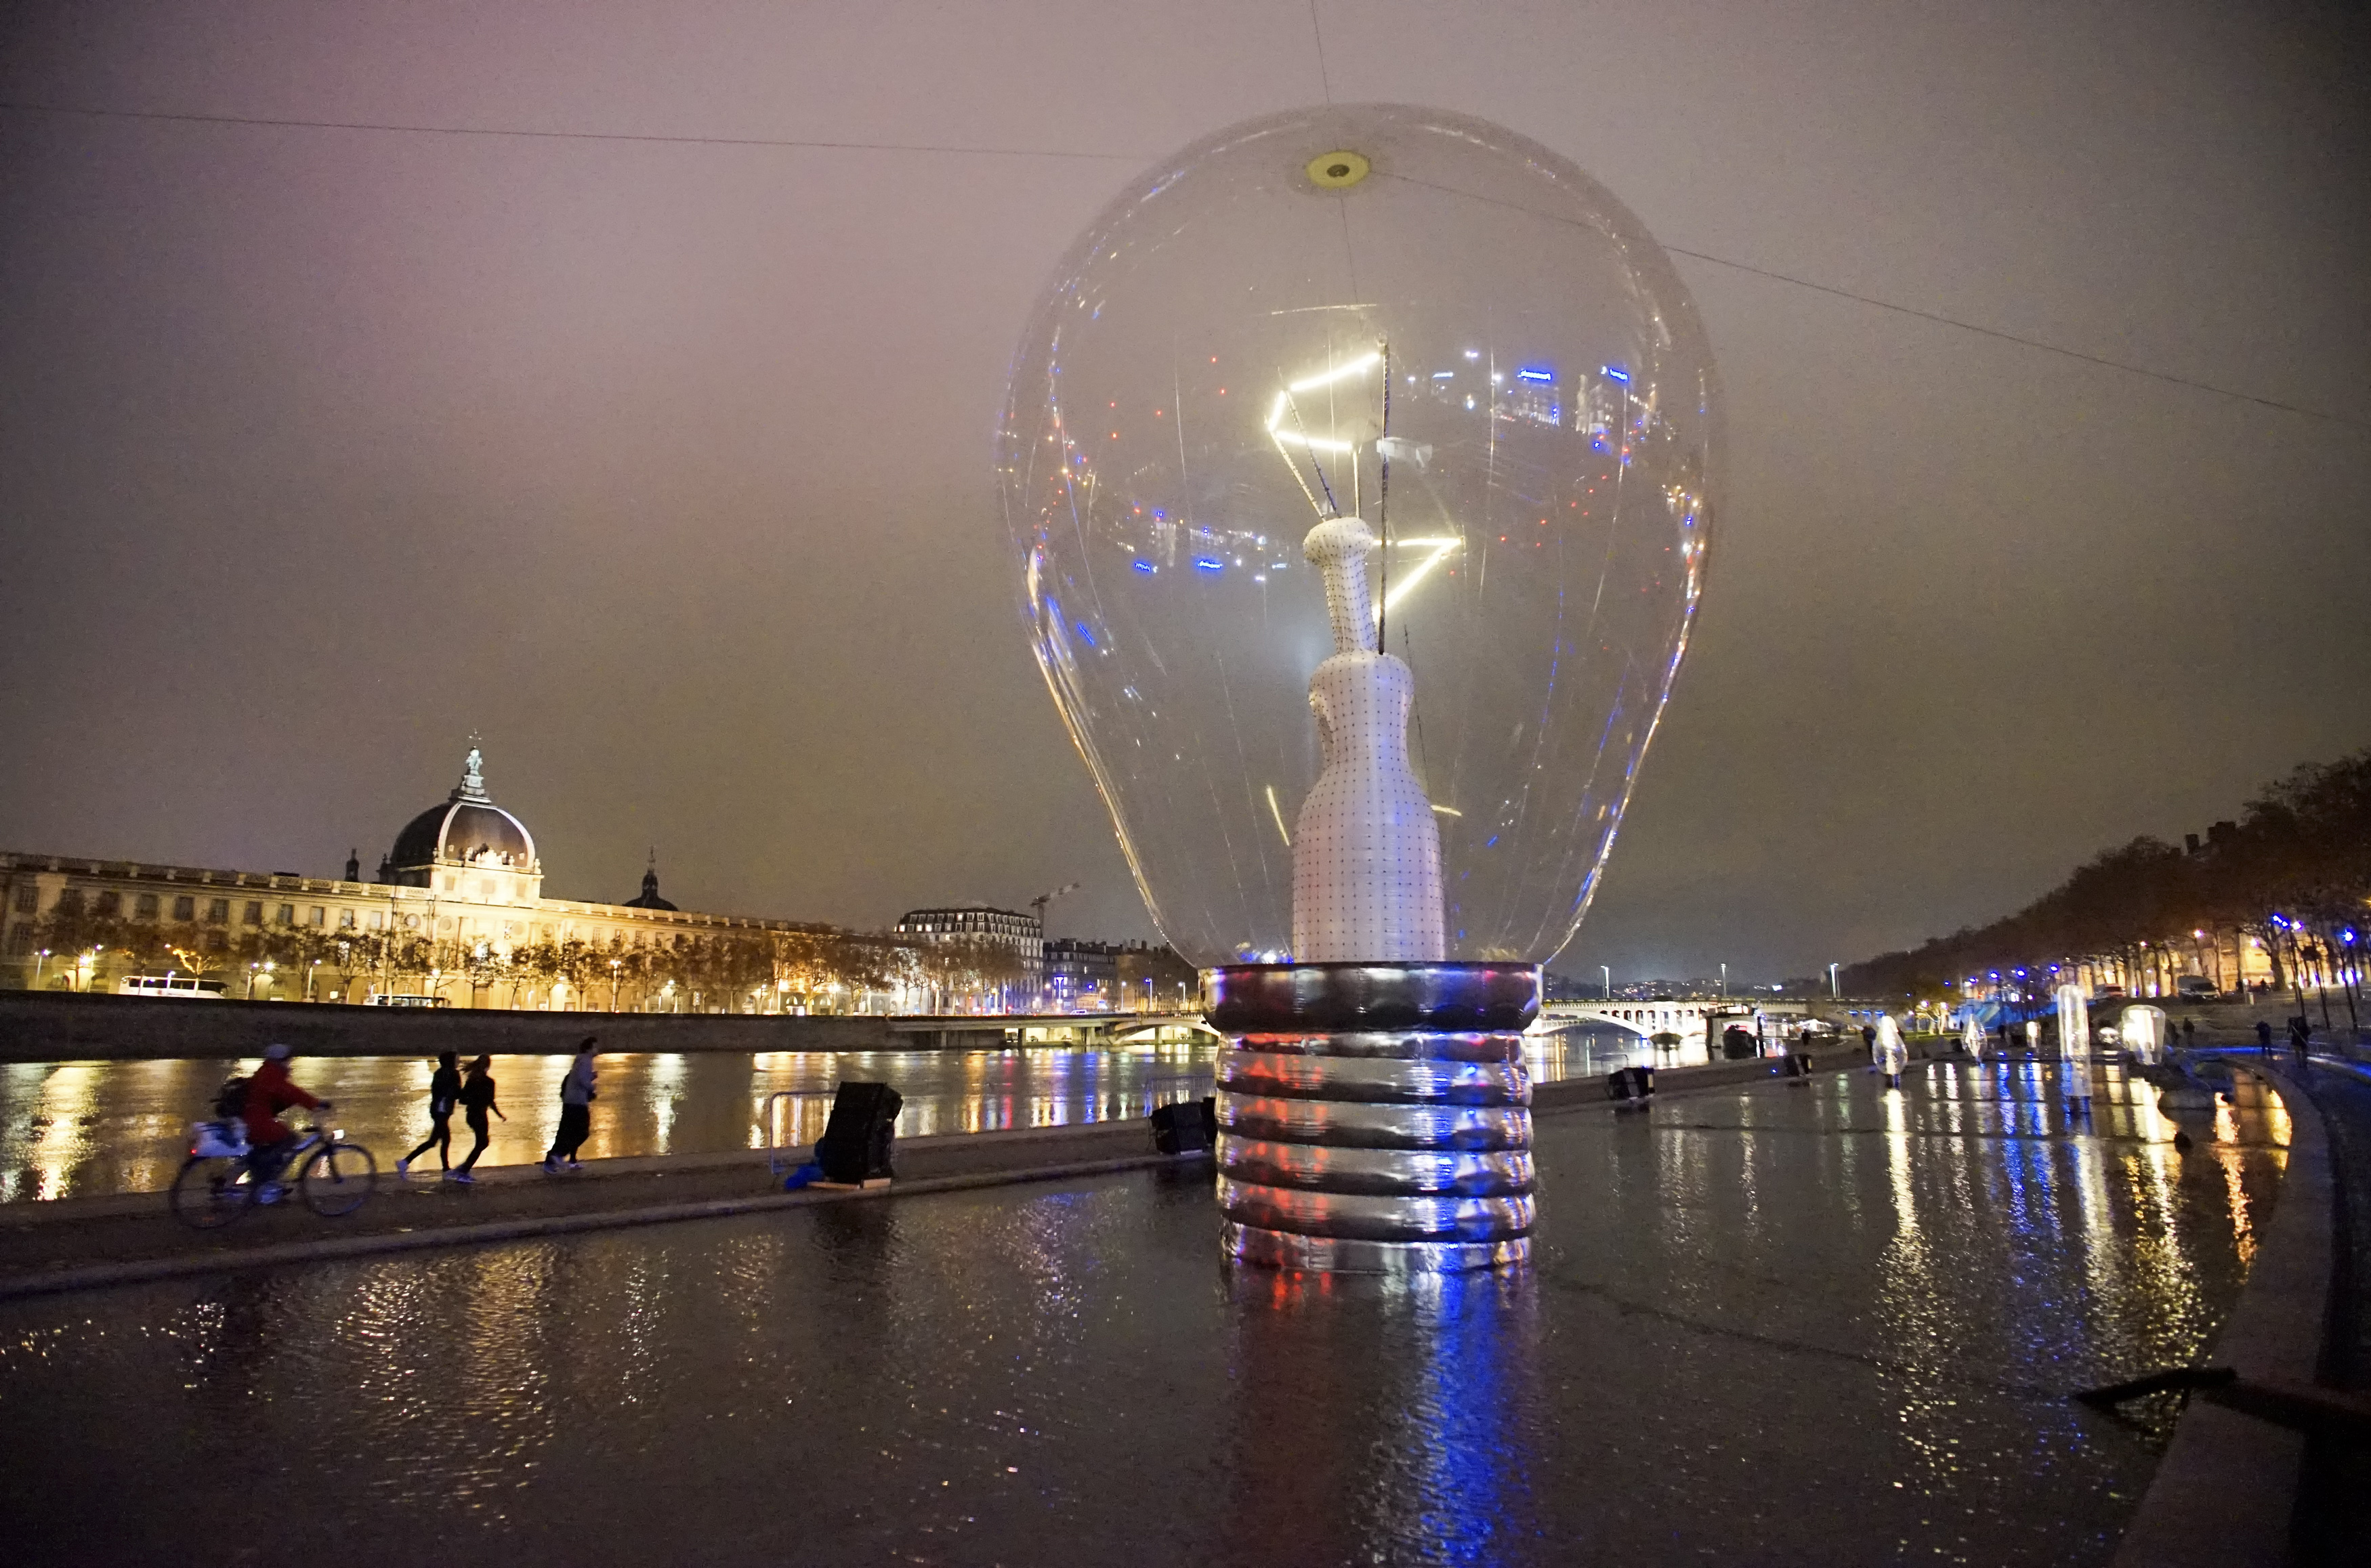 View of a giant incandescent light bulb as part of the Incandescence installation by artist Severine Fontaine during the rehearsal for the Festival of Lights in central Lyon